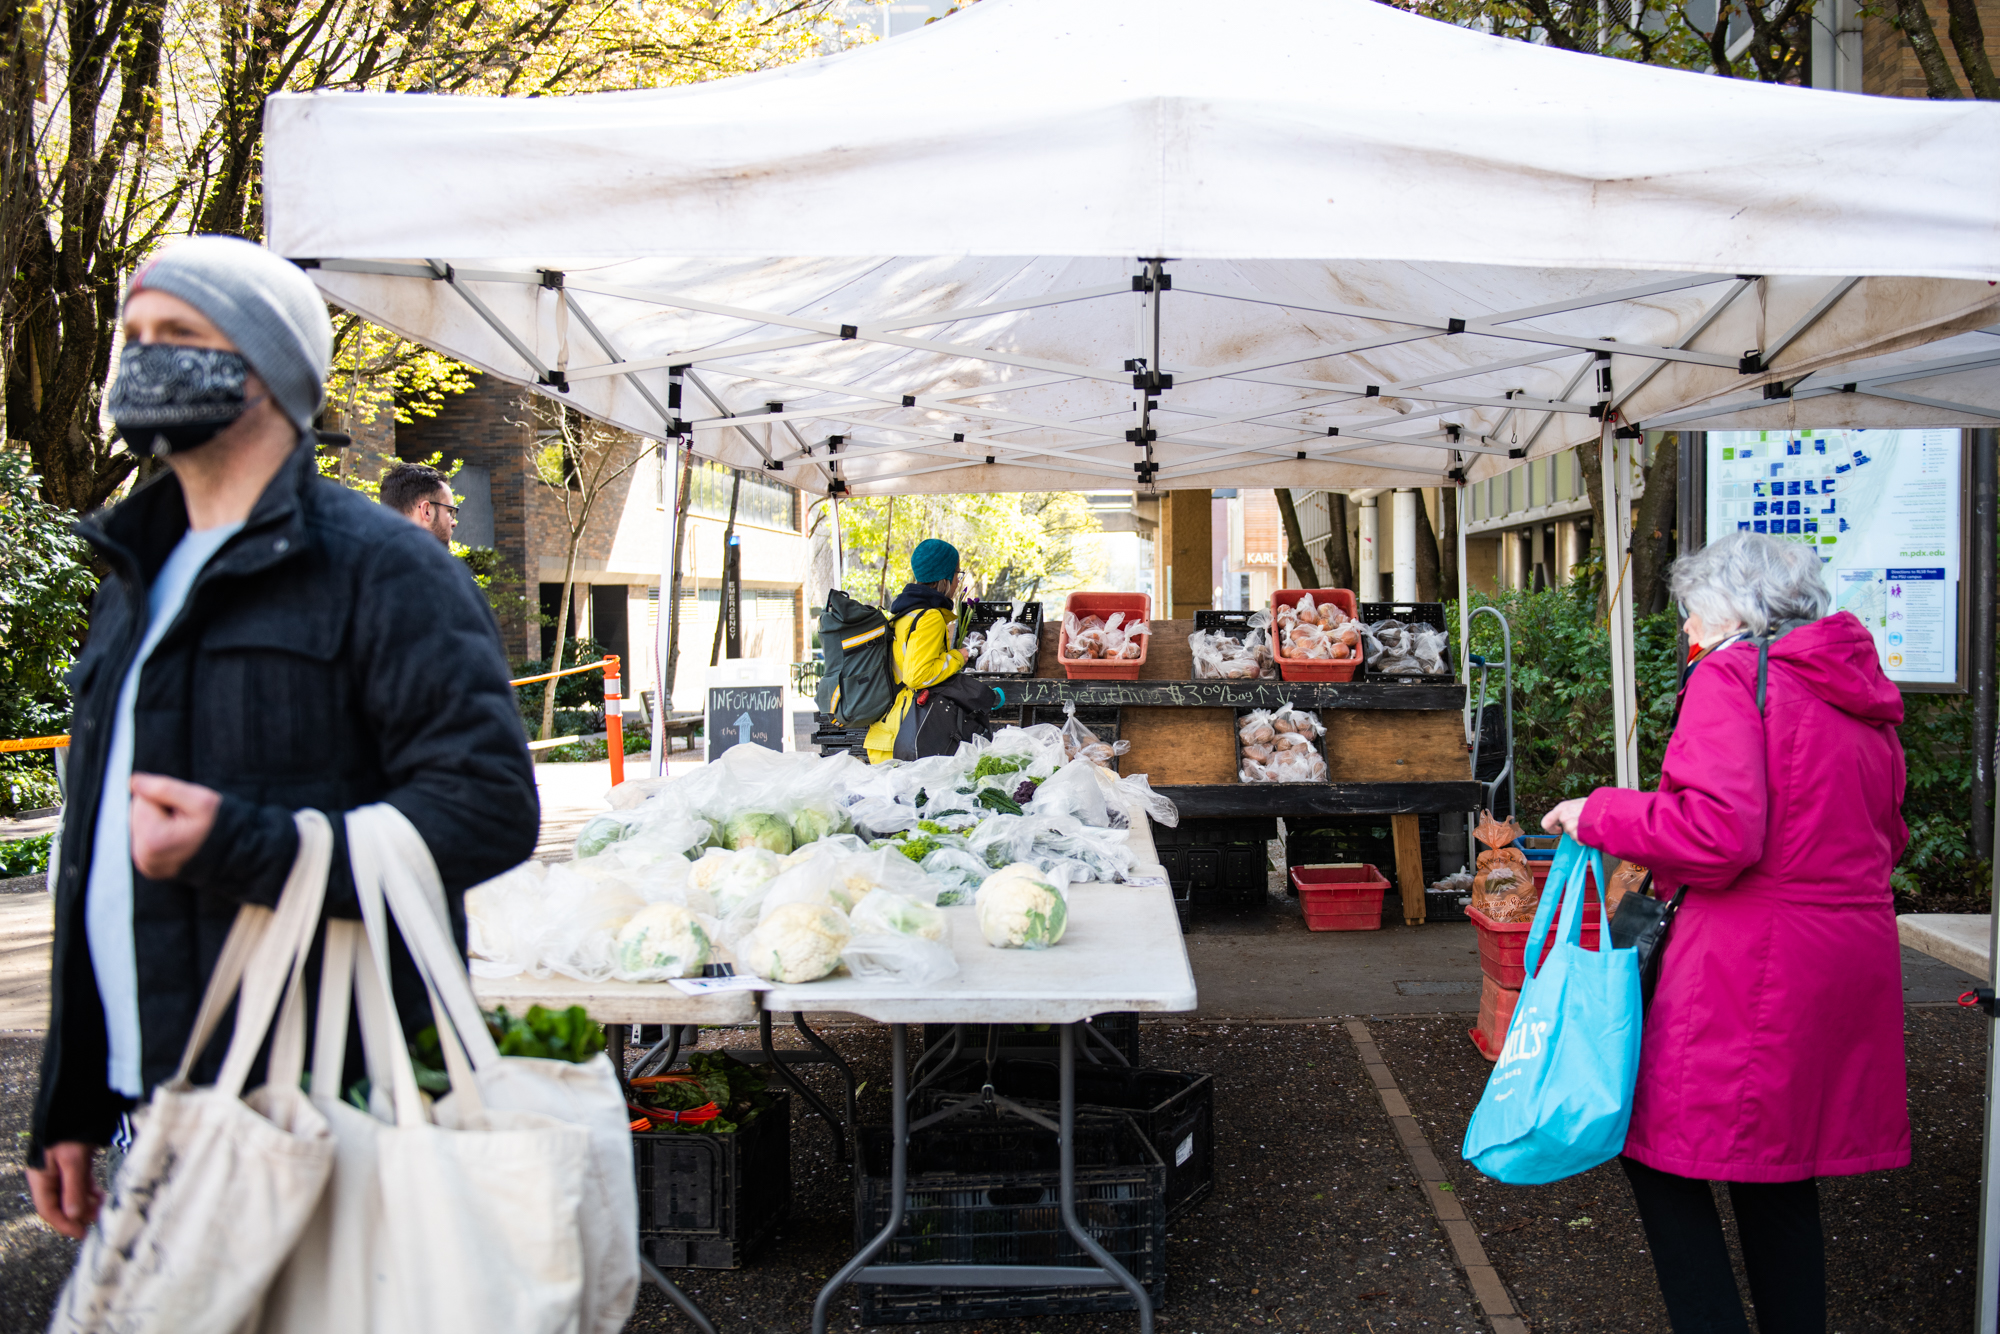 Patrons at the Portland Farmers Market sport masks and practice social distancing as they shop at the Winters Farms stand on Saturday, April 4.